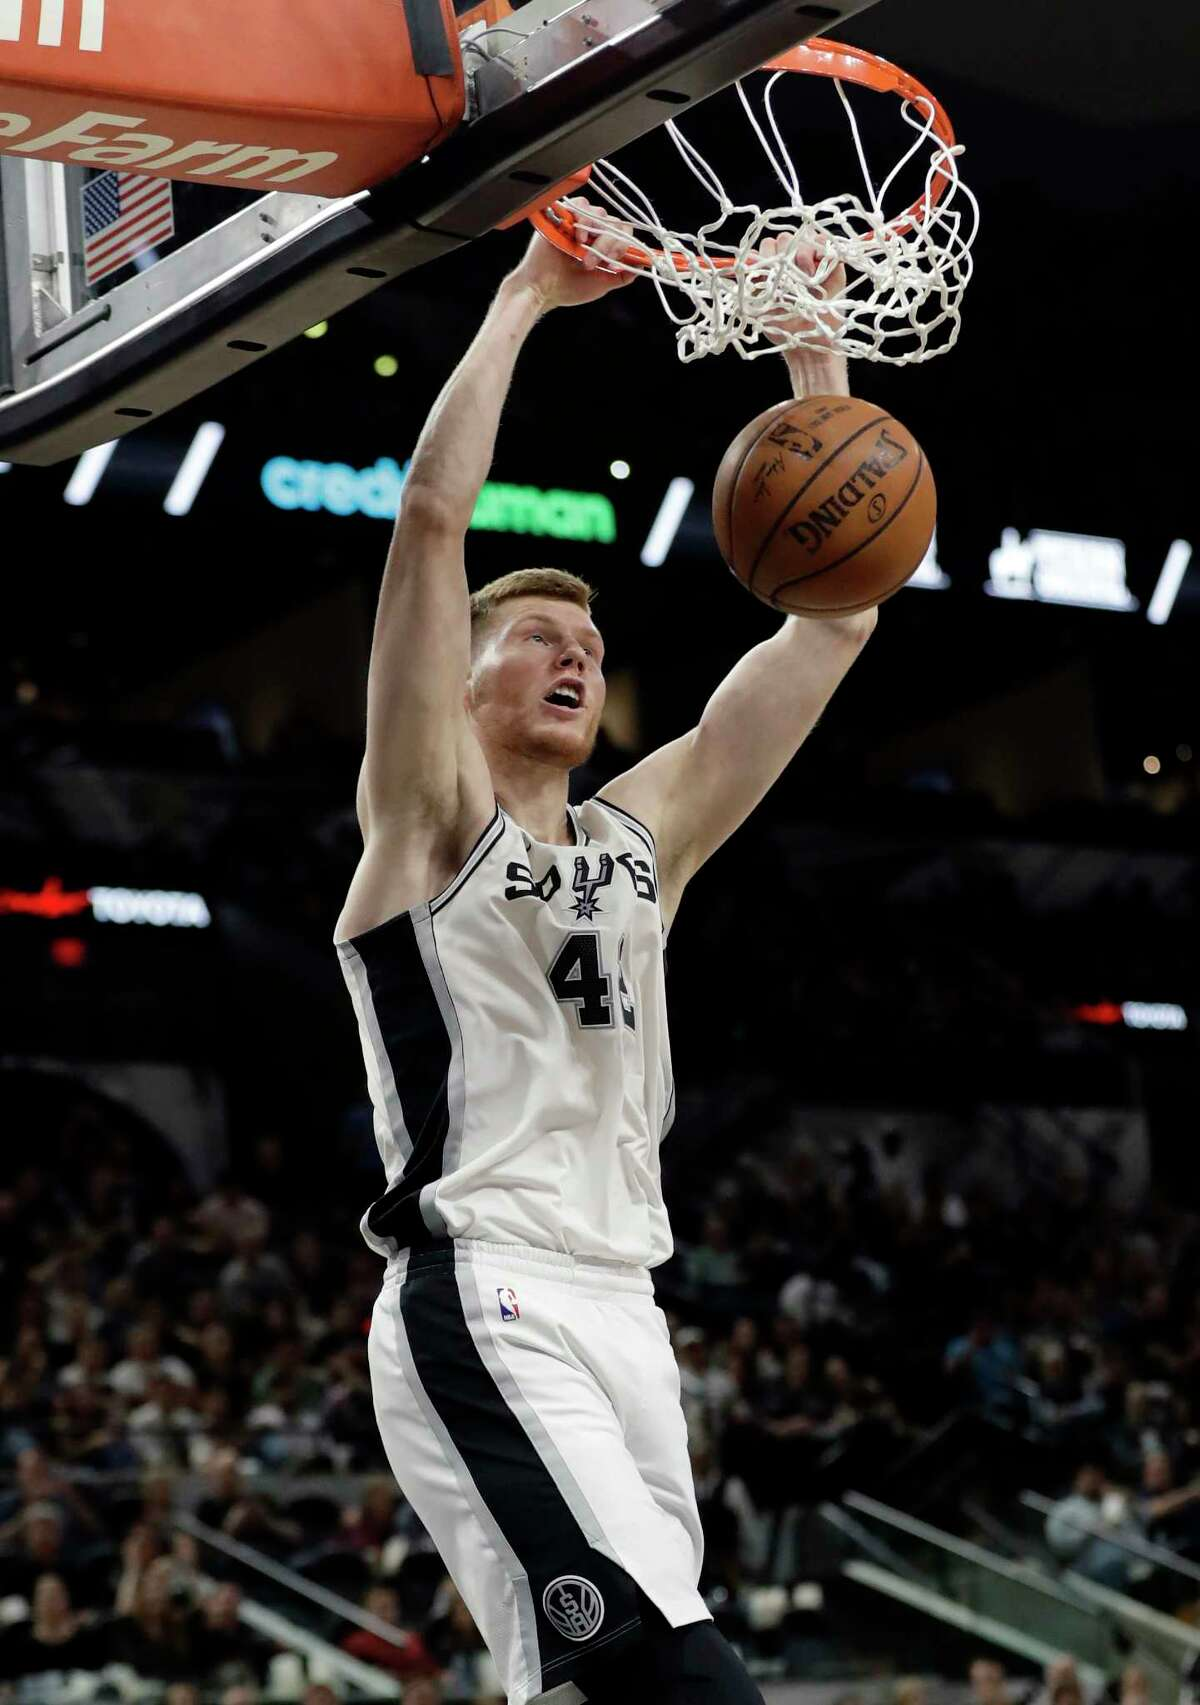 San Antonio Spurs center Davis Bertans (42) slam-dunks as he scores against the Memphis Grizzlies during the second half of an NBA basketball game, Monday, March 5, 2018, in San Antonio. (AP Photo/Eric Gay)